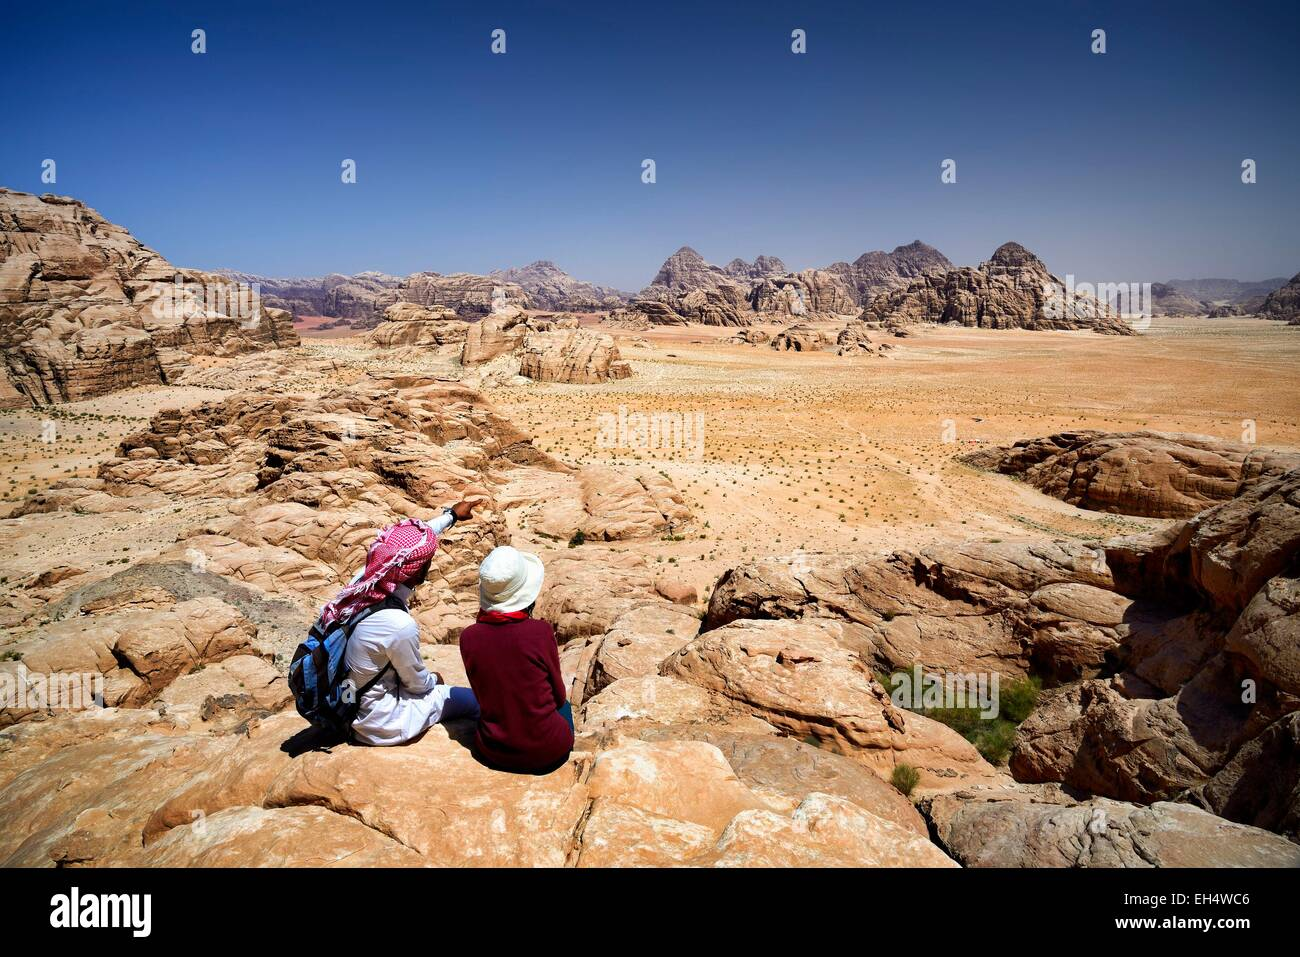 Jordan, Wadi Rum desert, protected area listed as World Heritage by UNESCO, tourist and local Bedouin guide seated - Stock Image